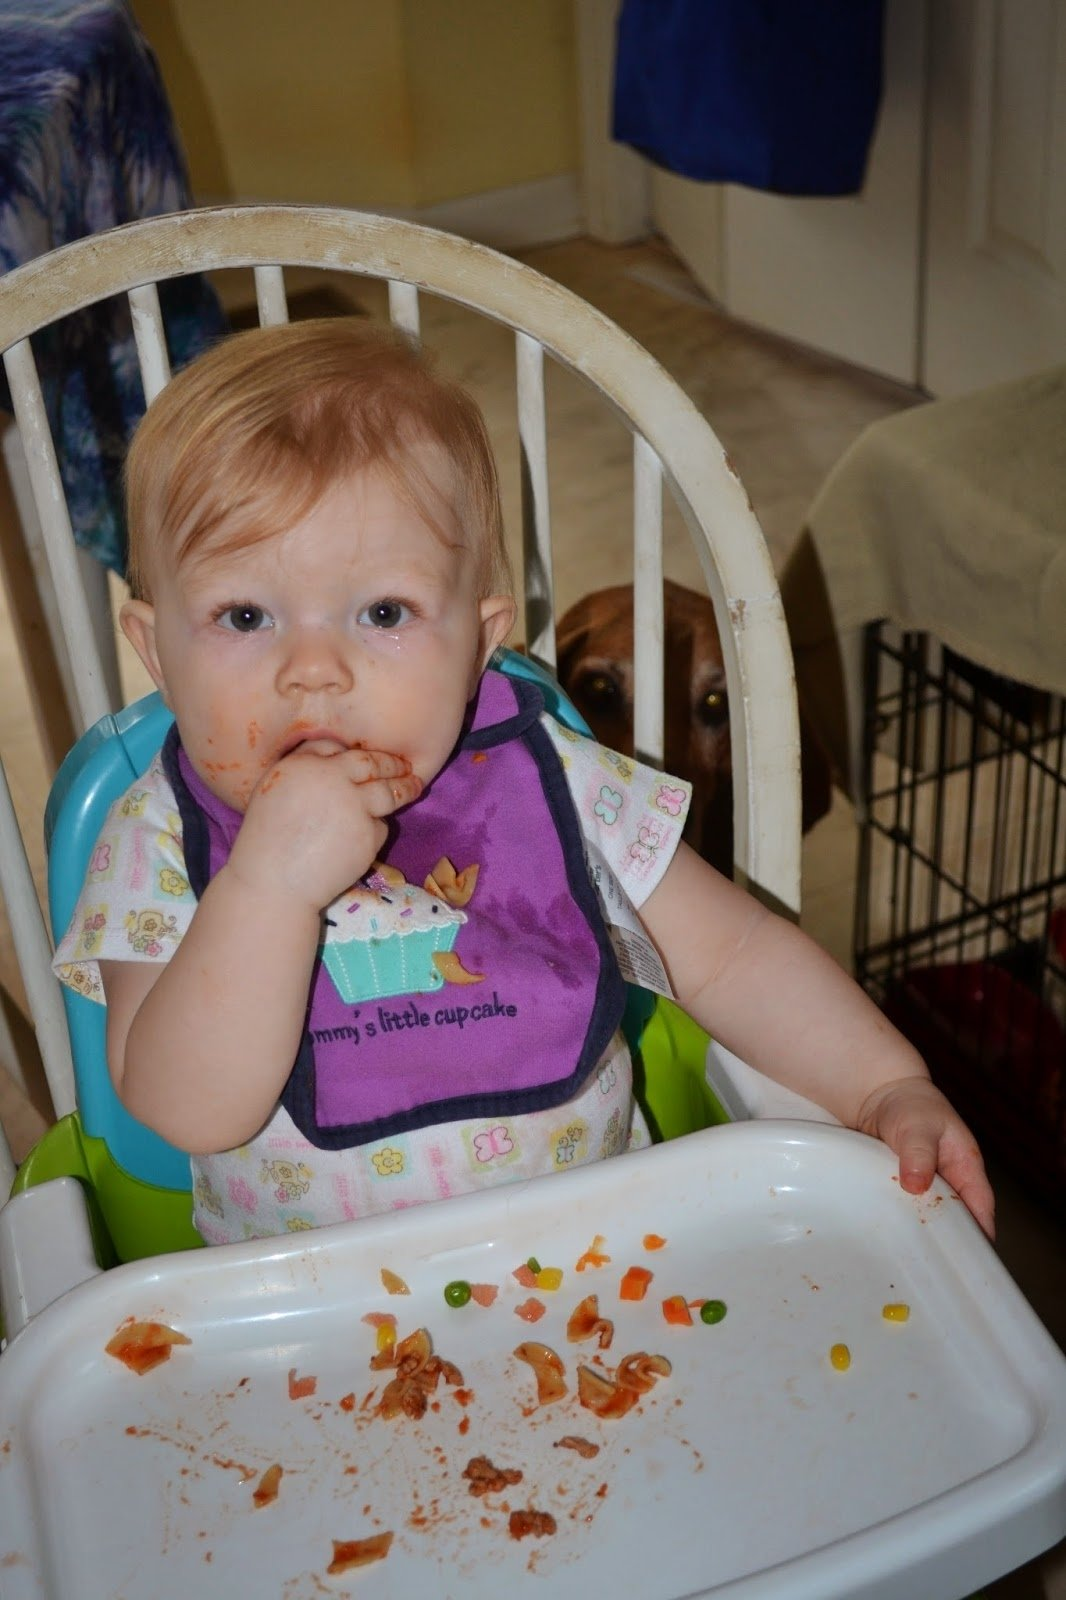 10 Stylish 9 Month Old Photo Ideas finger foods for an 11 month old meal ideas 2020